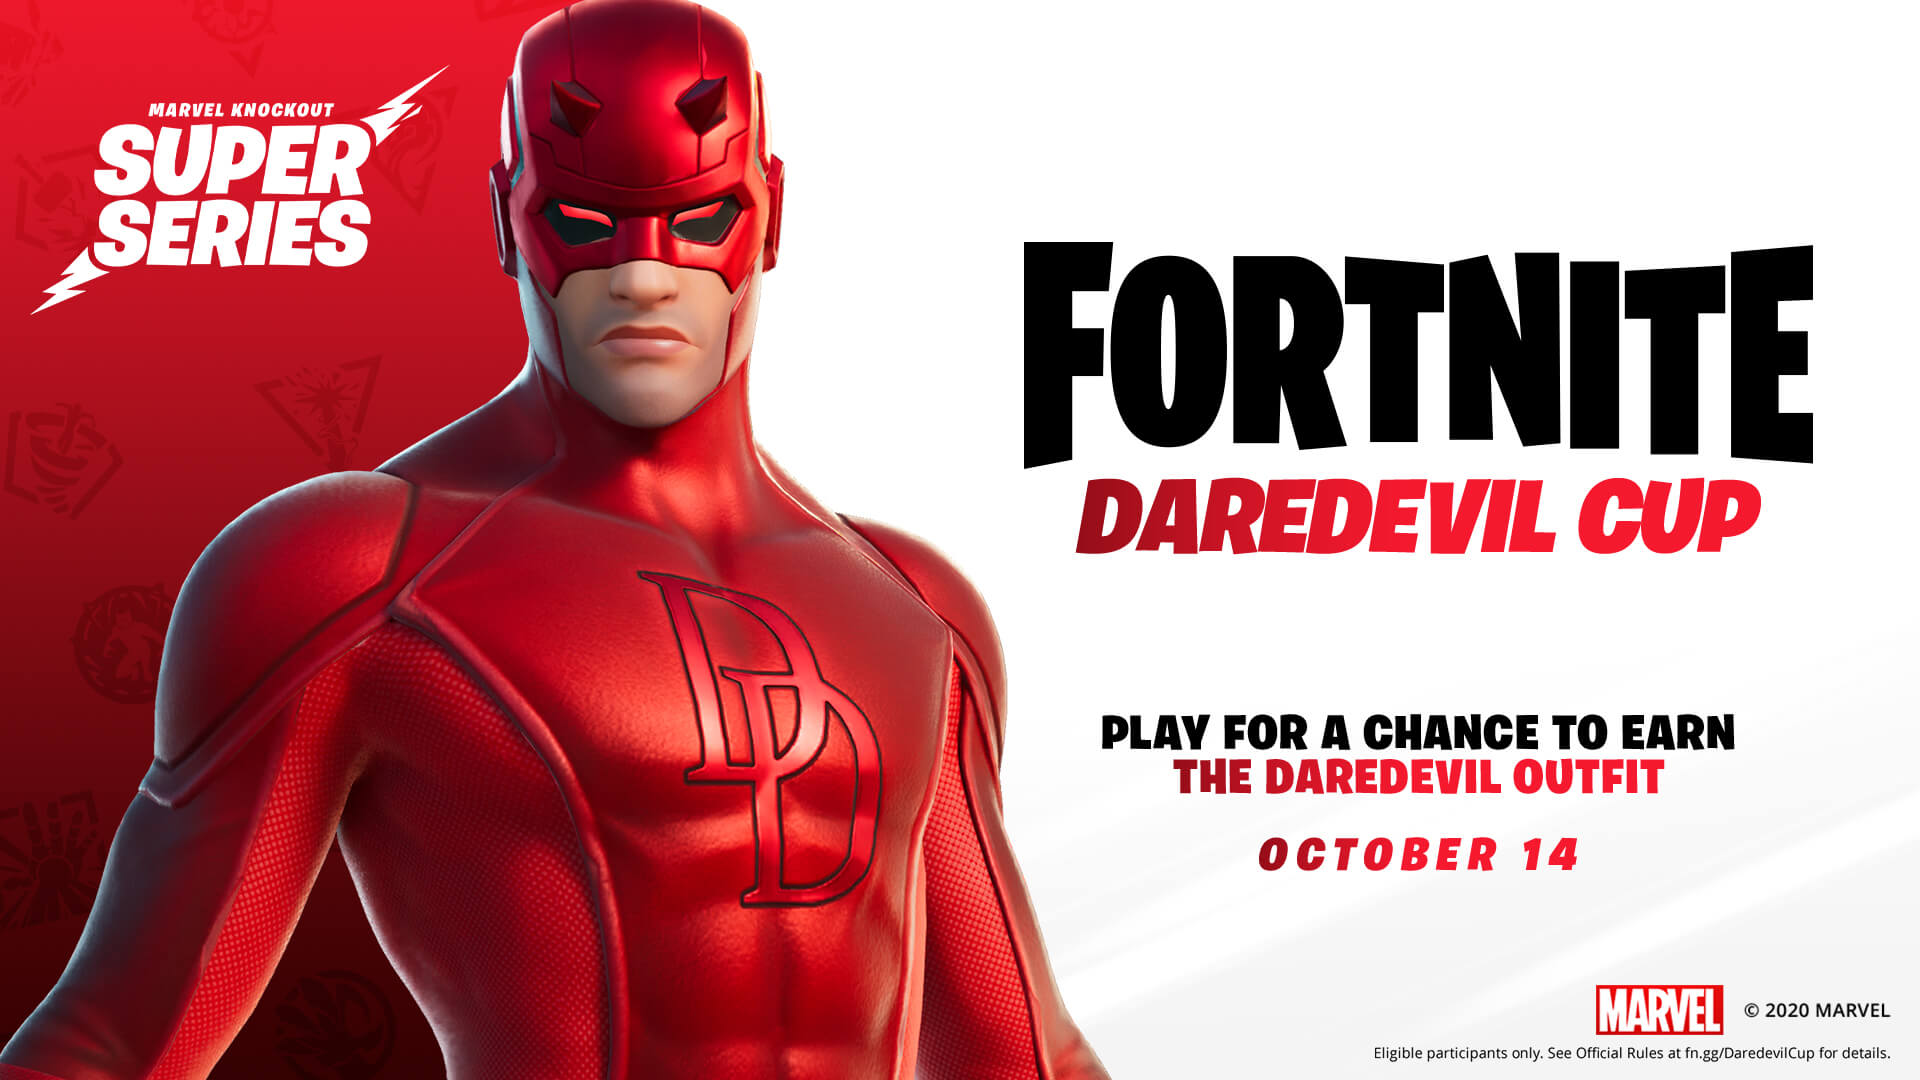 EN 14BR Competitive MarvelSuperSeries DaredevilCup Social